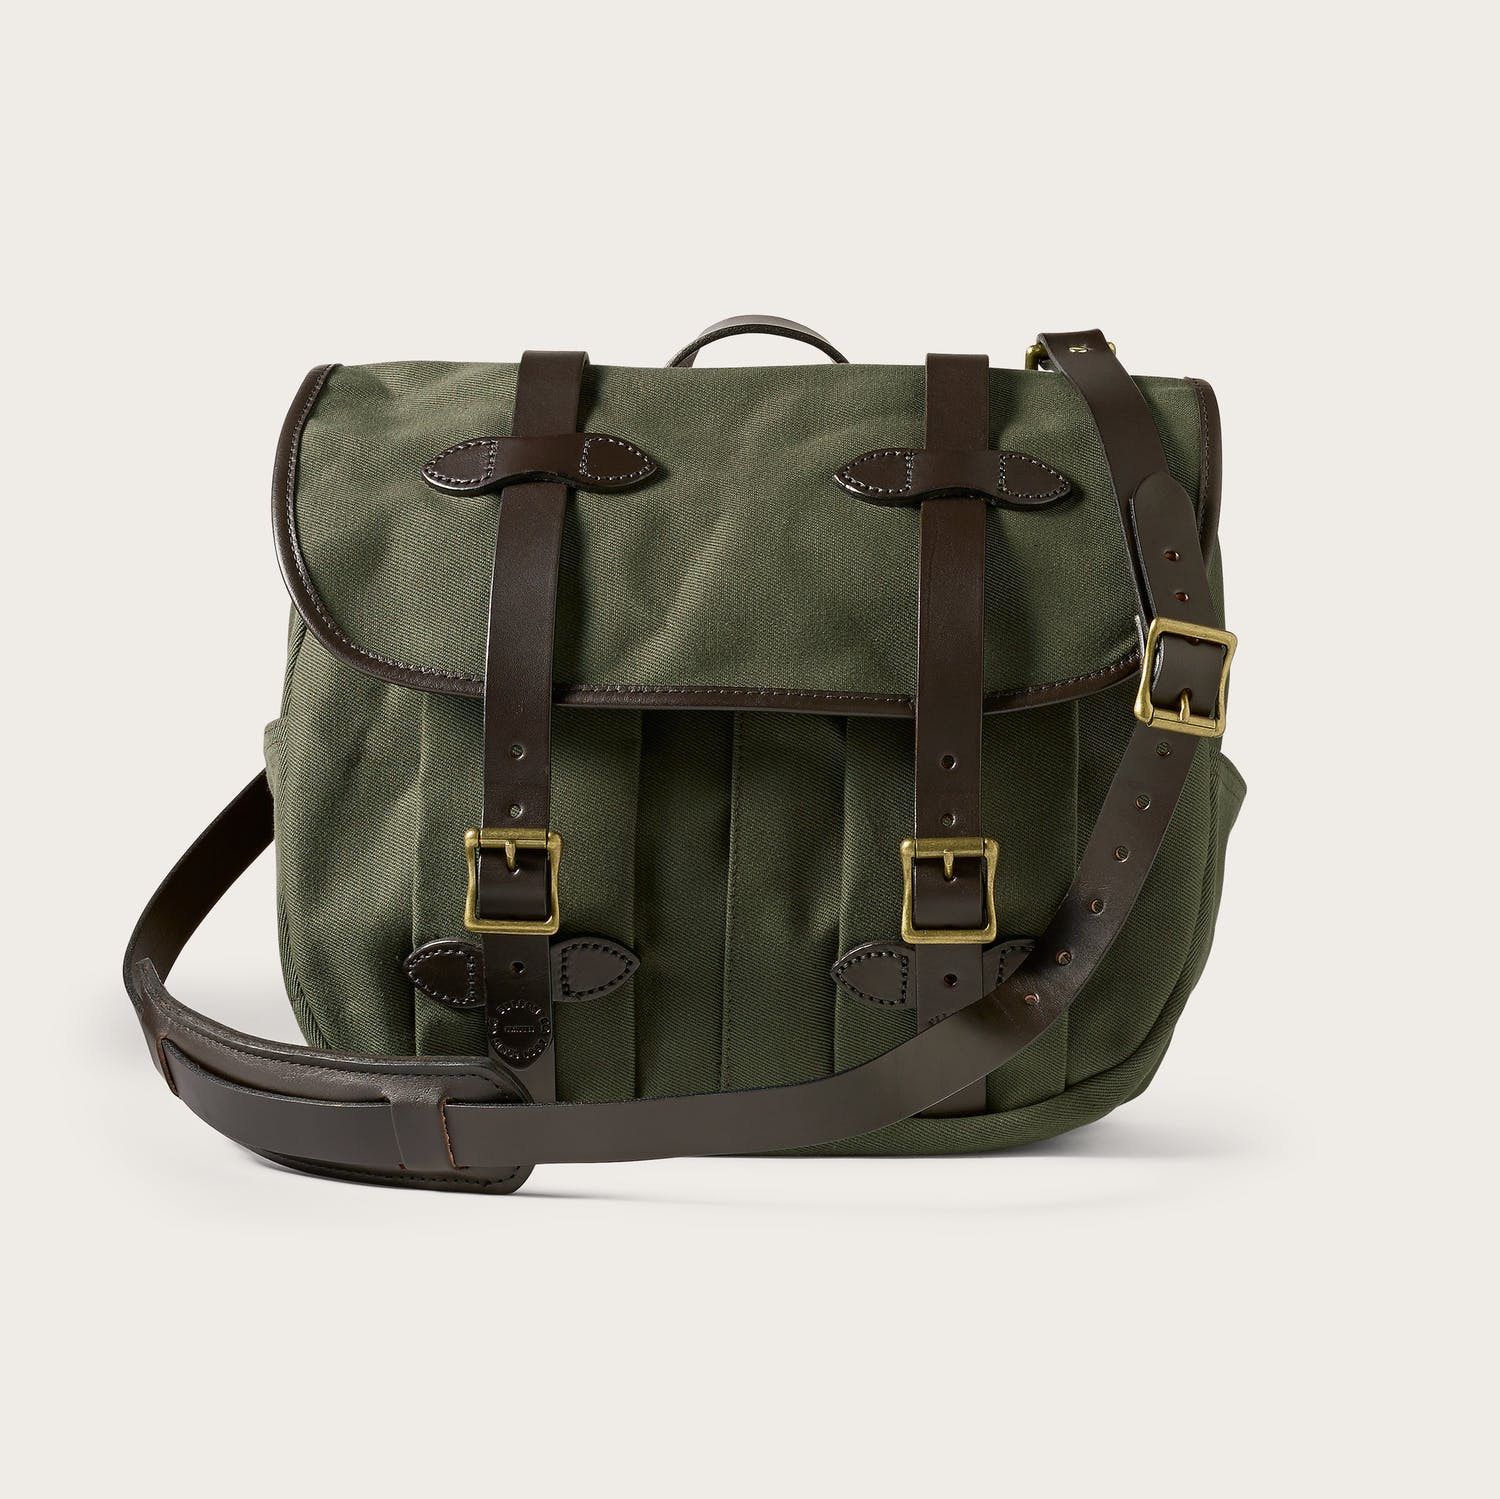 Filson Medium Rugged Twill Field Bag - Otter Green